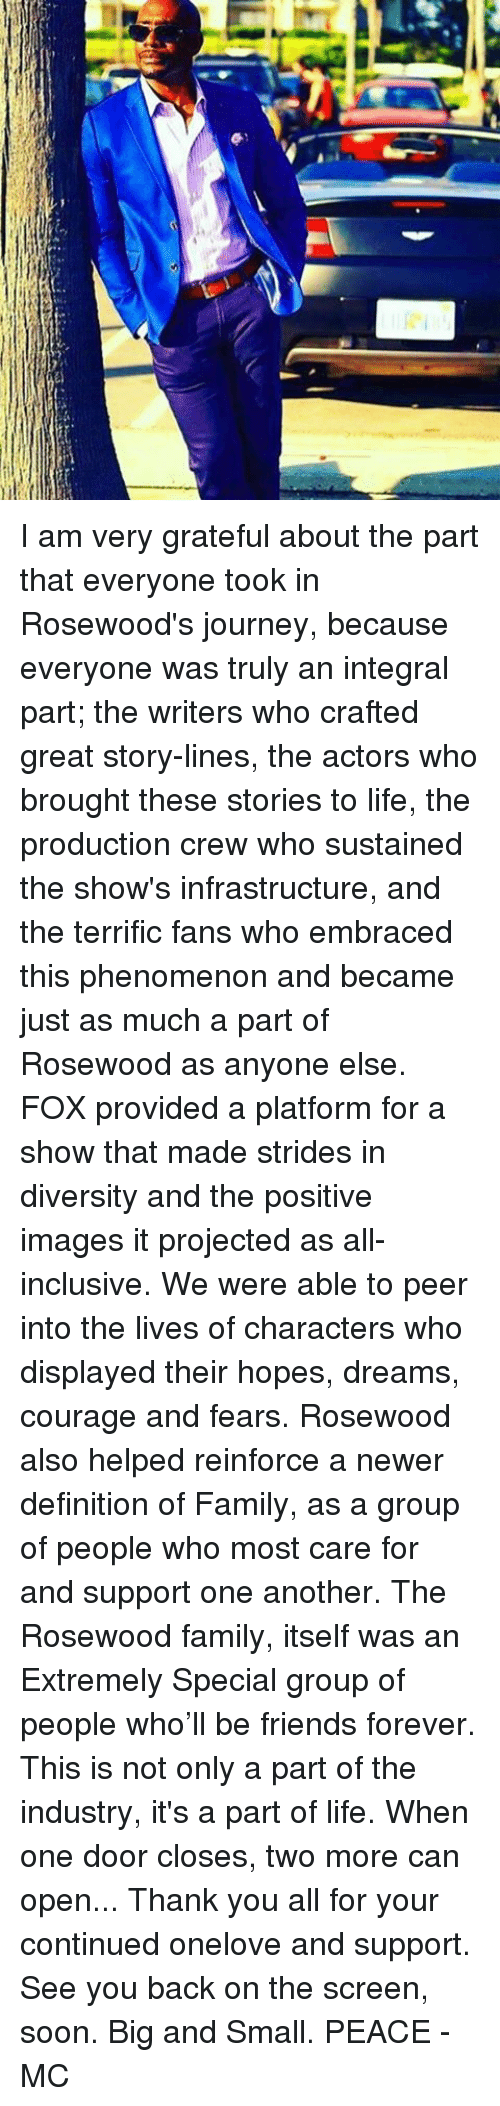 Peering: I am very grateful about the part that everyone took in Rosewood's journey, because everyone was truly an integral part; the writers who crafted great story-lines, the actors who brought these stories to life, the production crew who sustained the show's infrastructure, and the terrific fans who embraced this phenomenon and became just as much a part of Rosewood as anyone else. FOX provided a platform for a show that made strides in diversity and the positive images it projected as all-inclusive. We were able to peer into the lives of characters who displayed their hopes, dreams, courage and fears. Rosewood also helped reinforce a newer definition of Family, as a group of people who most care for and support one another. The Rosewood family, itself was an Extremely Special group of people who'll be friends forever. This is not only a part of the industry, it's a part of life. When one door closes, two more can open... Thank you all for your continued onelove and support. See you back on the screen, soon. Big and Small. PEACE - MC